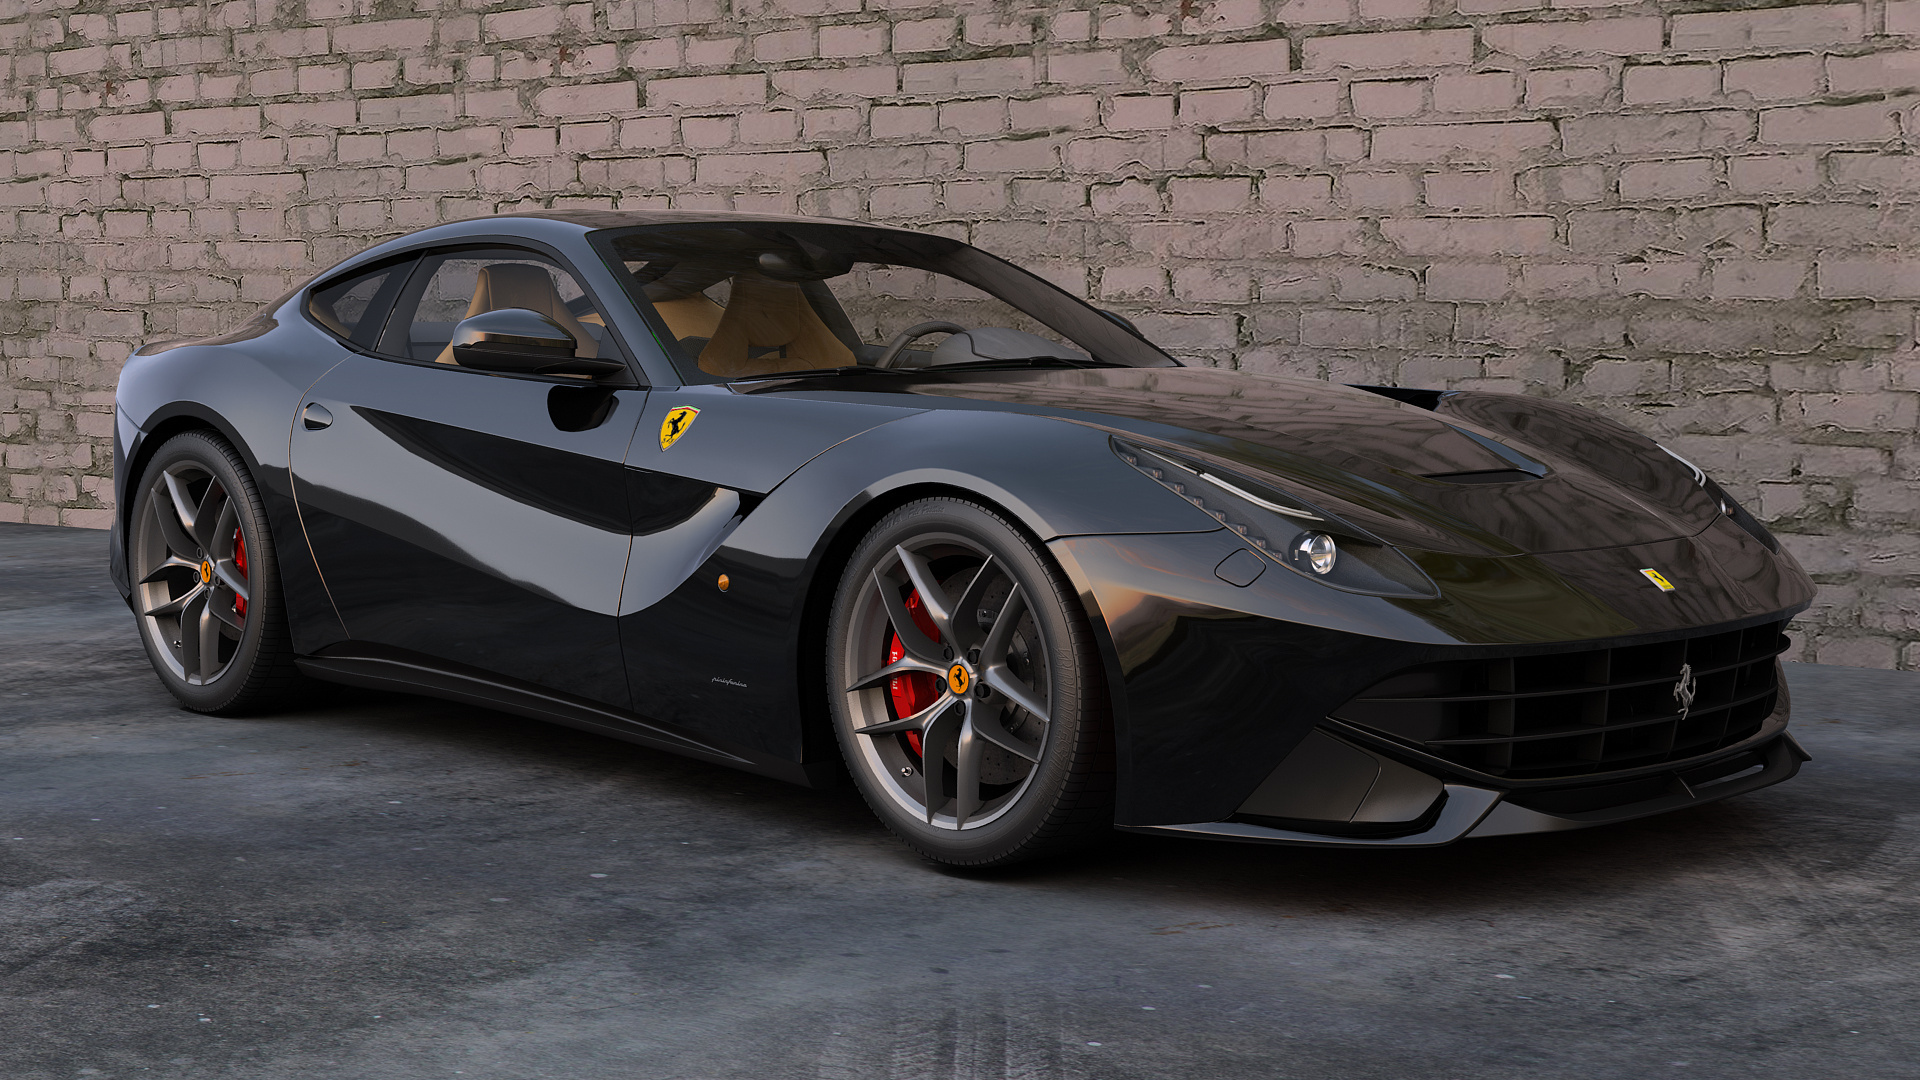 31 ferrari f12 berlinetta hd wallpapers backgrounds wallpaper abyss. Black Bedroom Furniture Sets. Home Design Ideas